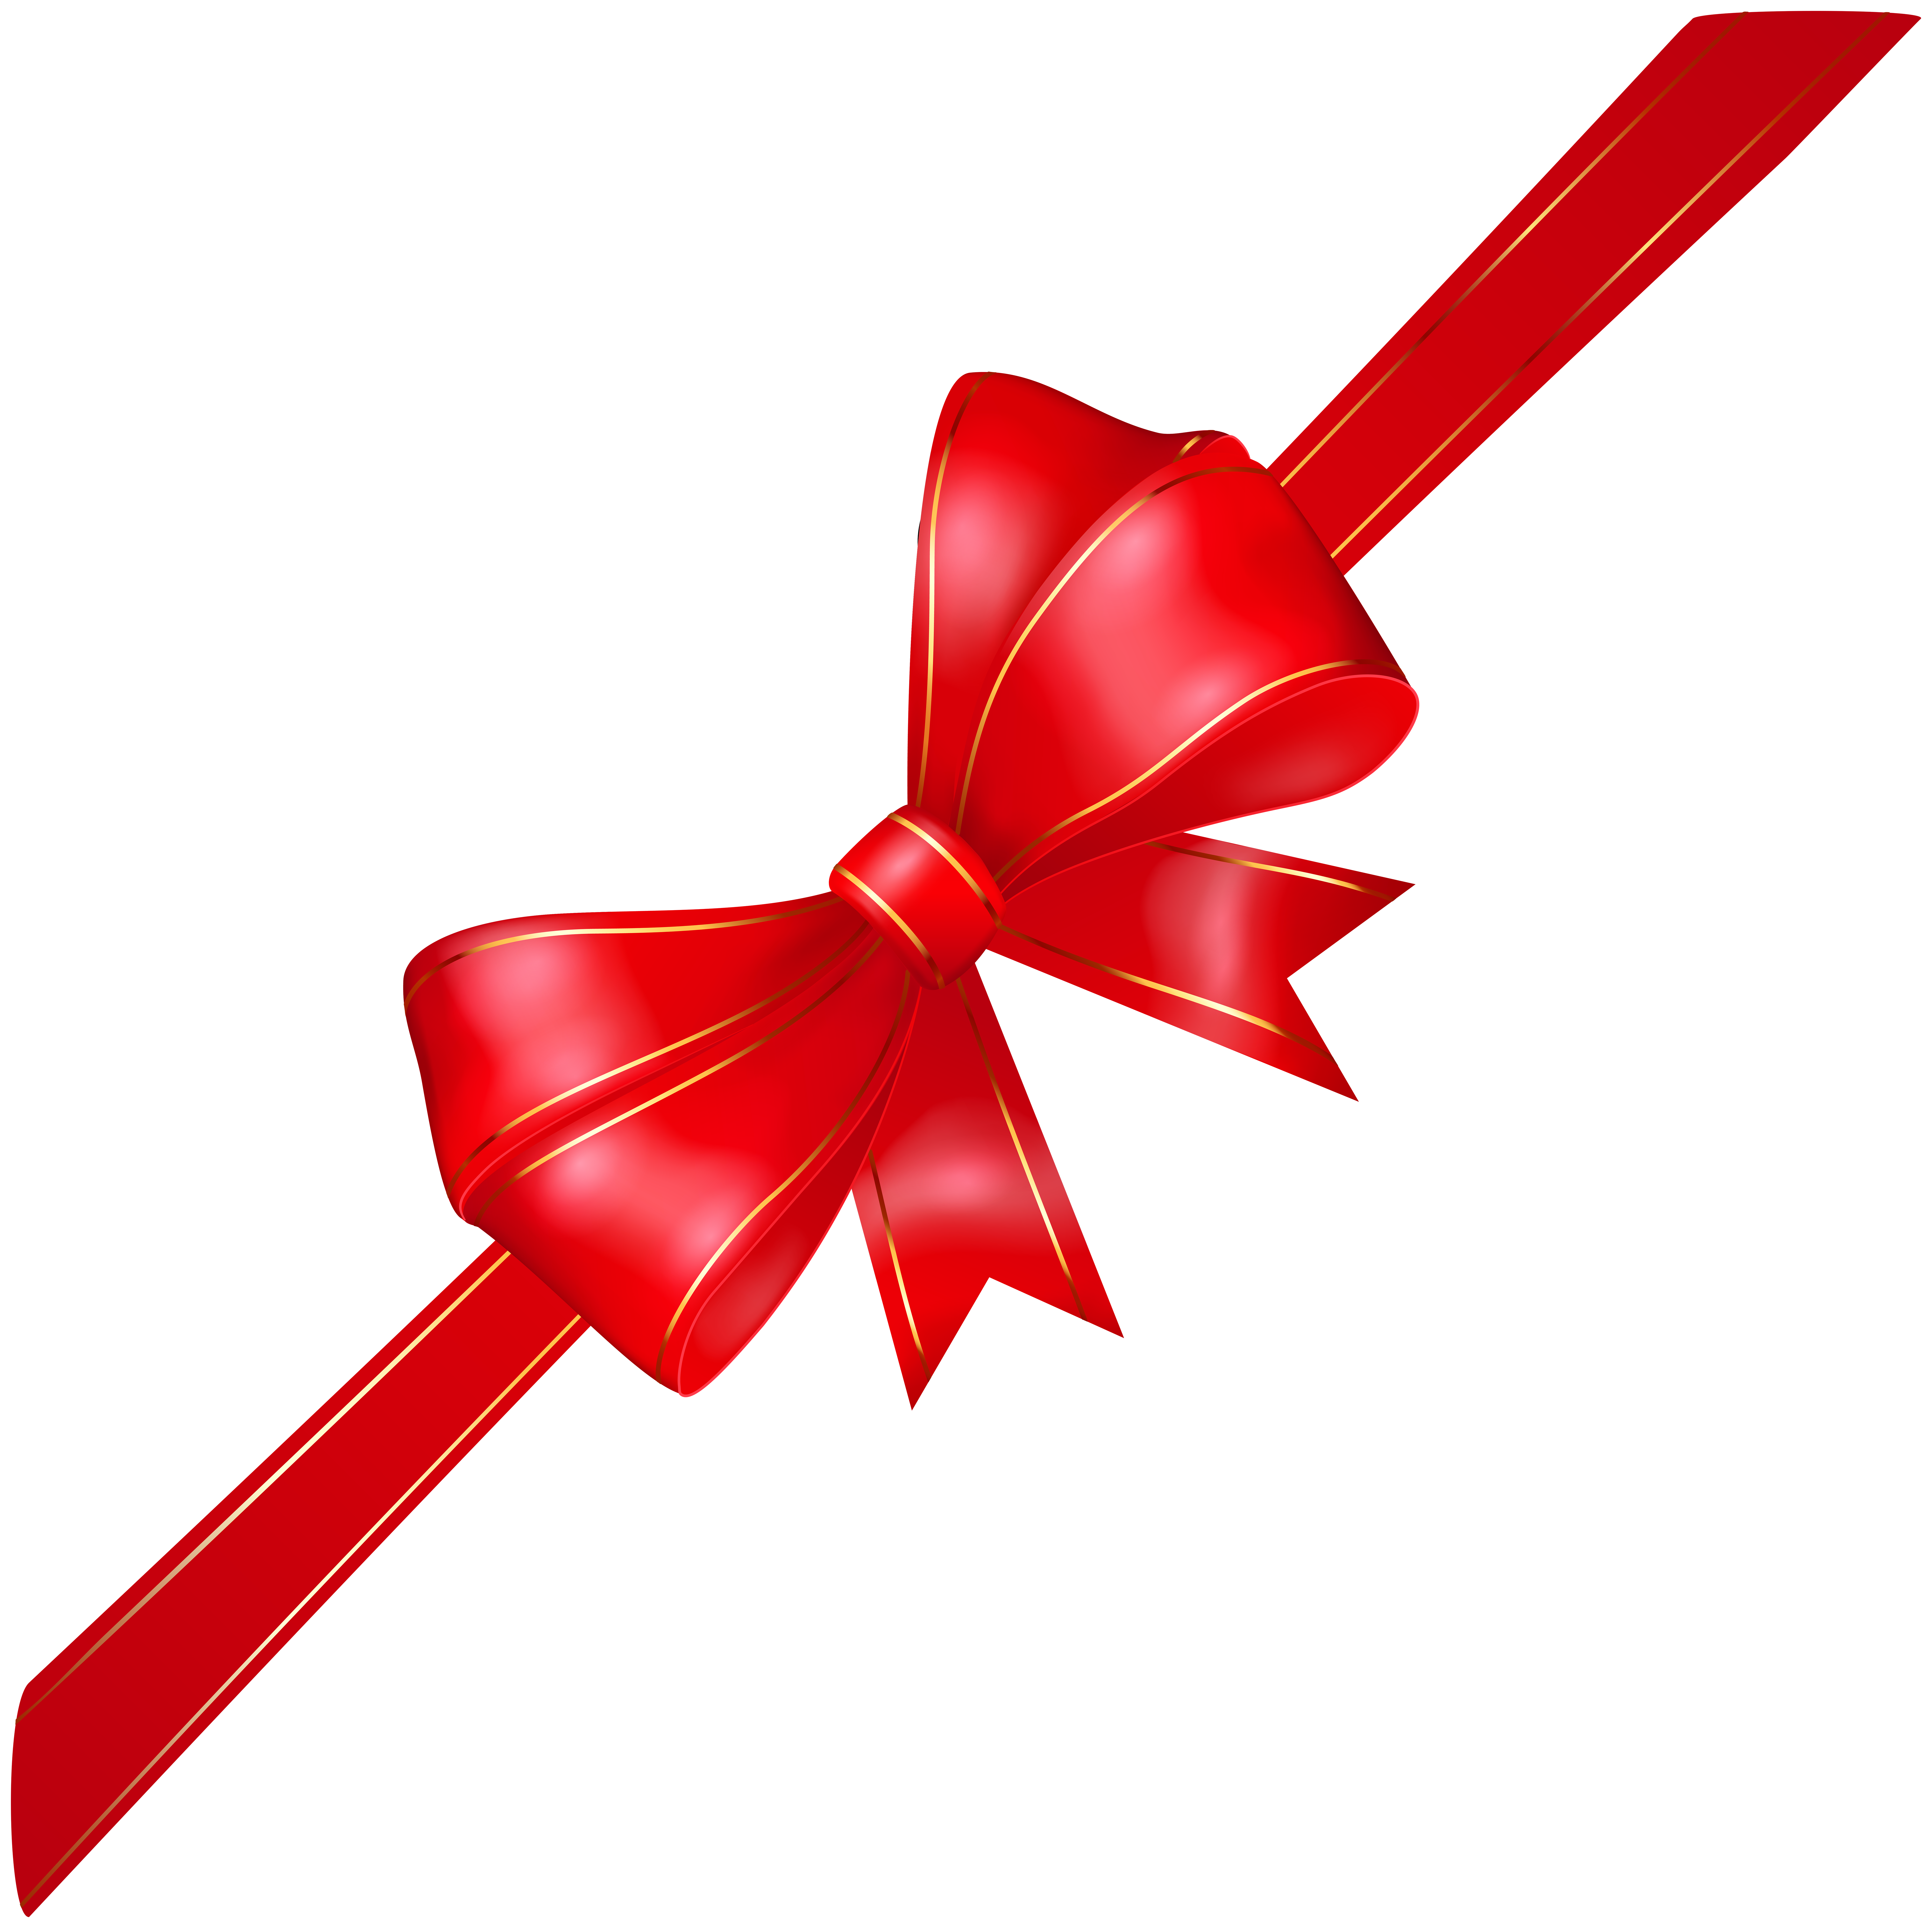 Corner bow png image. Transparent bg red clip art royalty free